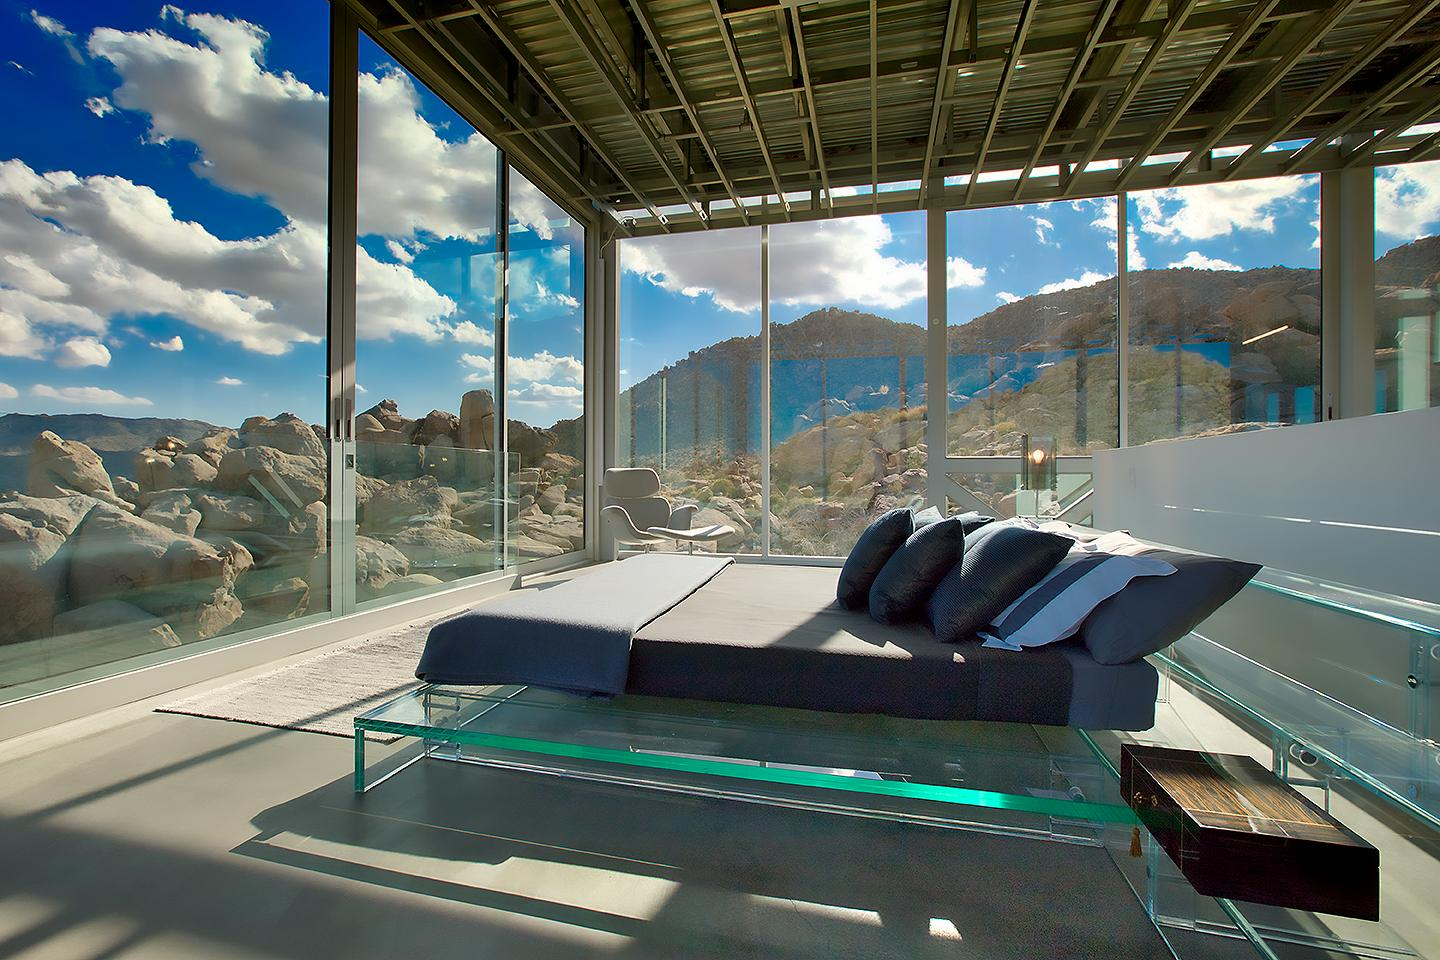 The Invisible House's bedrooms allow visitors to wake up to views of the desert